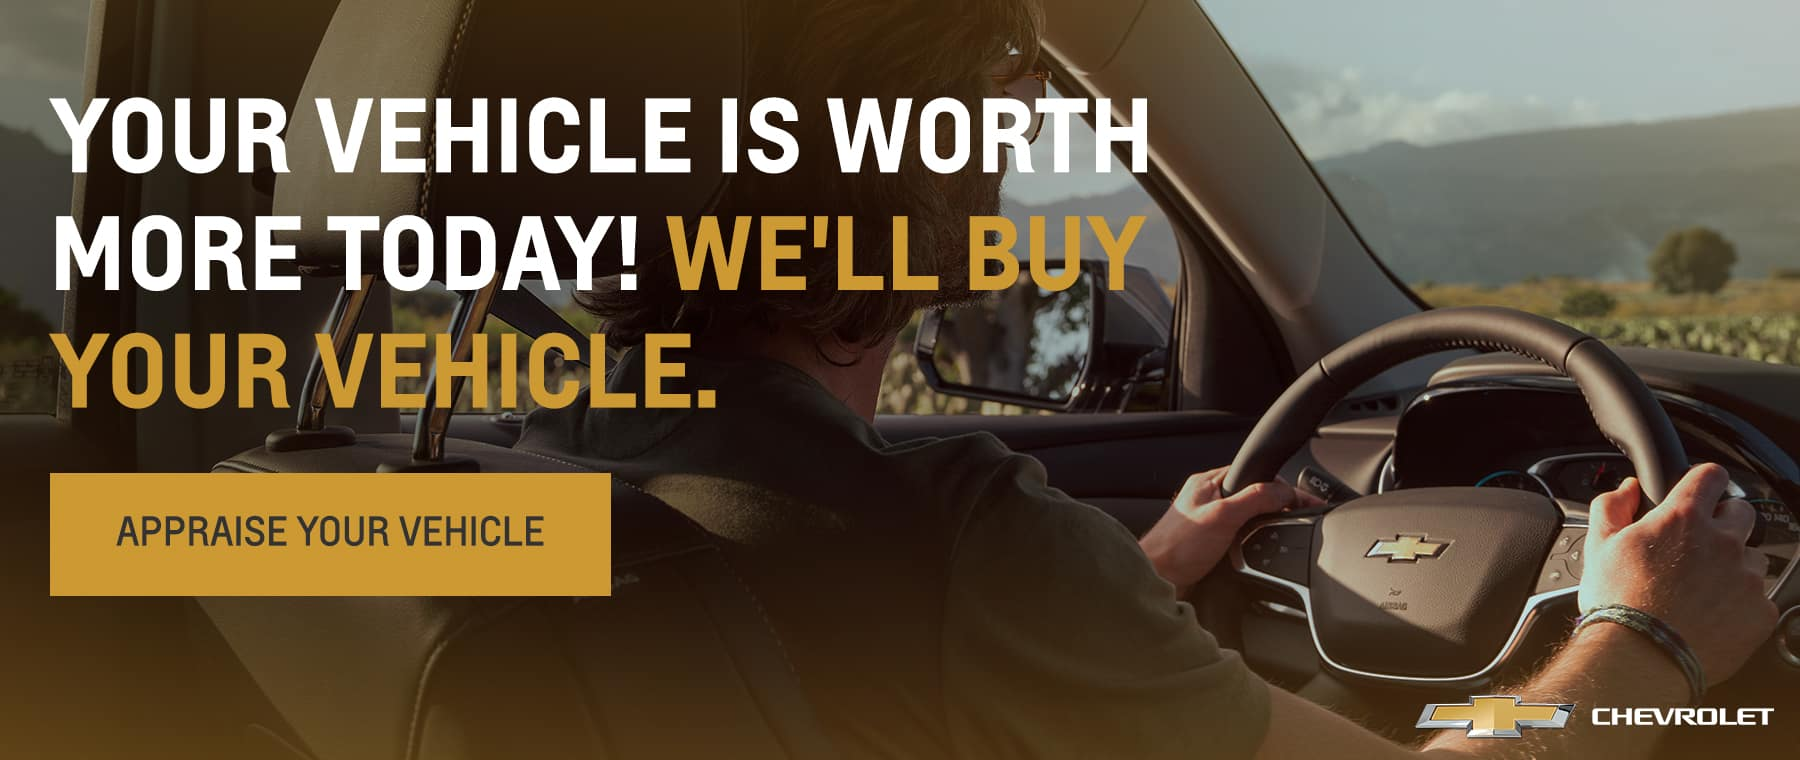 Your Vehicle is Worth More Today! We'll Buy Your Vehicle.